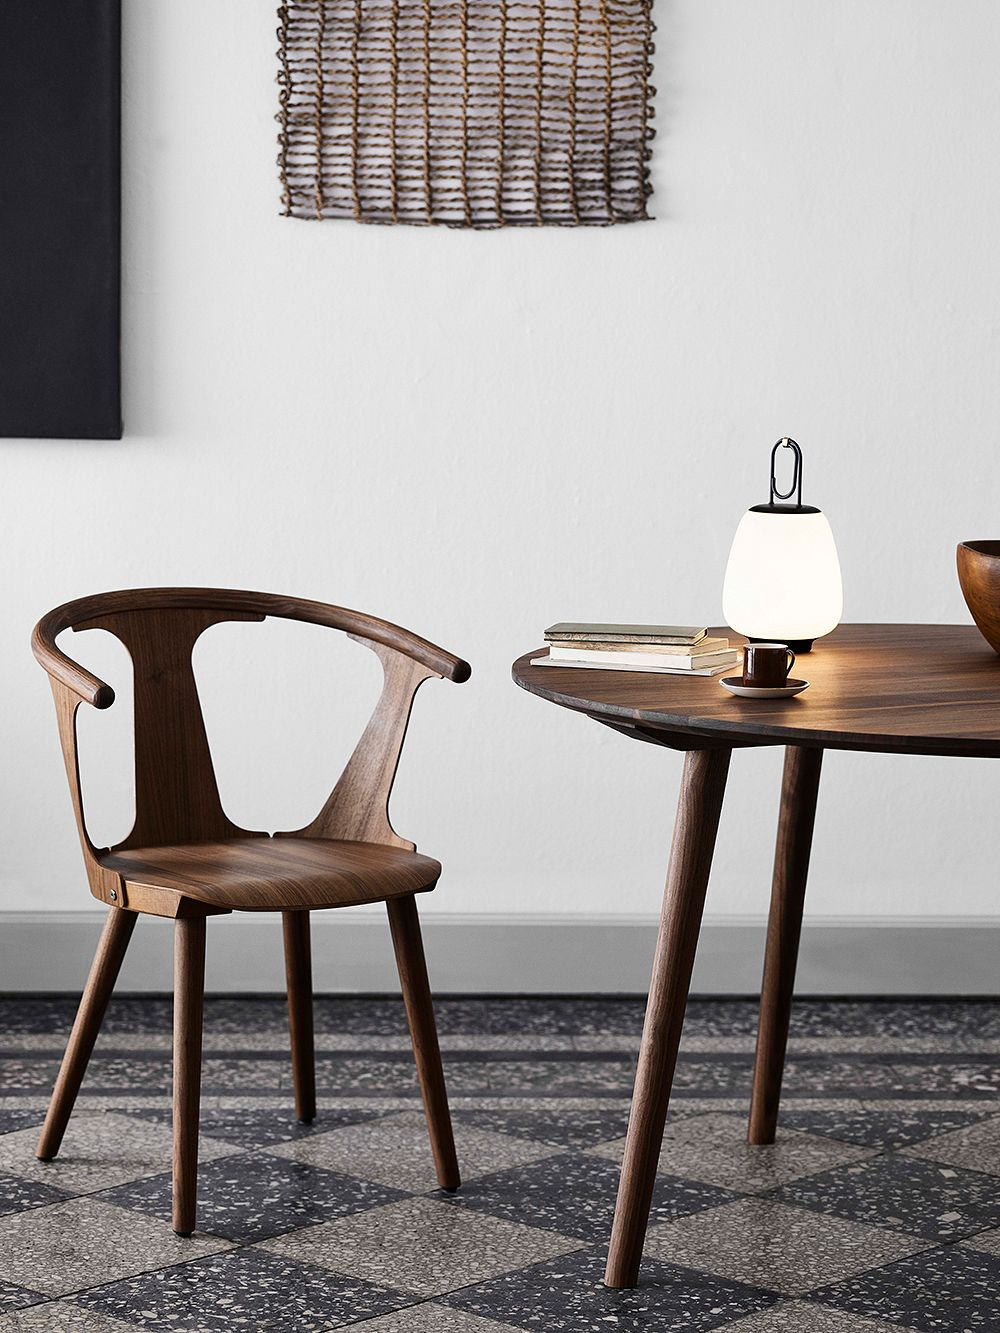 &Tradition In Between SK1 chair and SK4 table, smoked oak